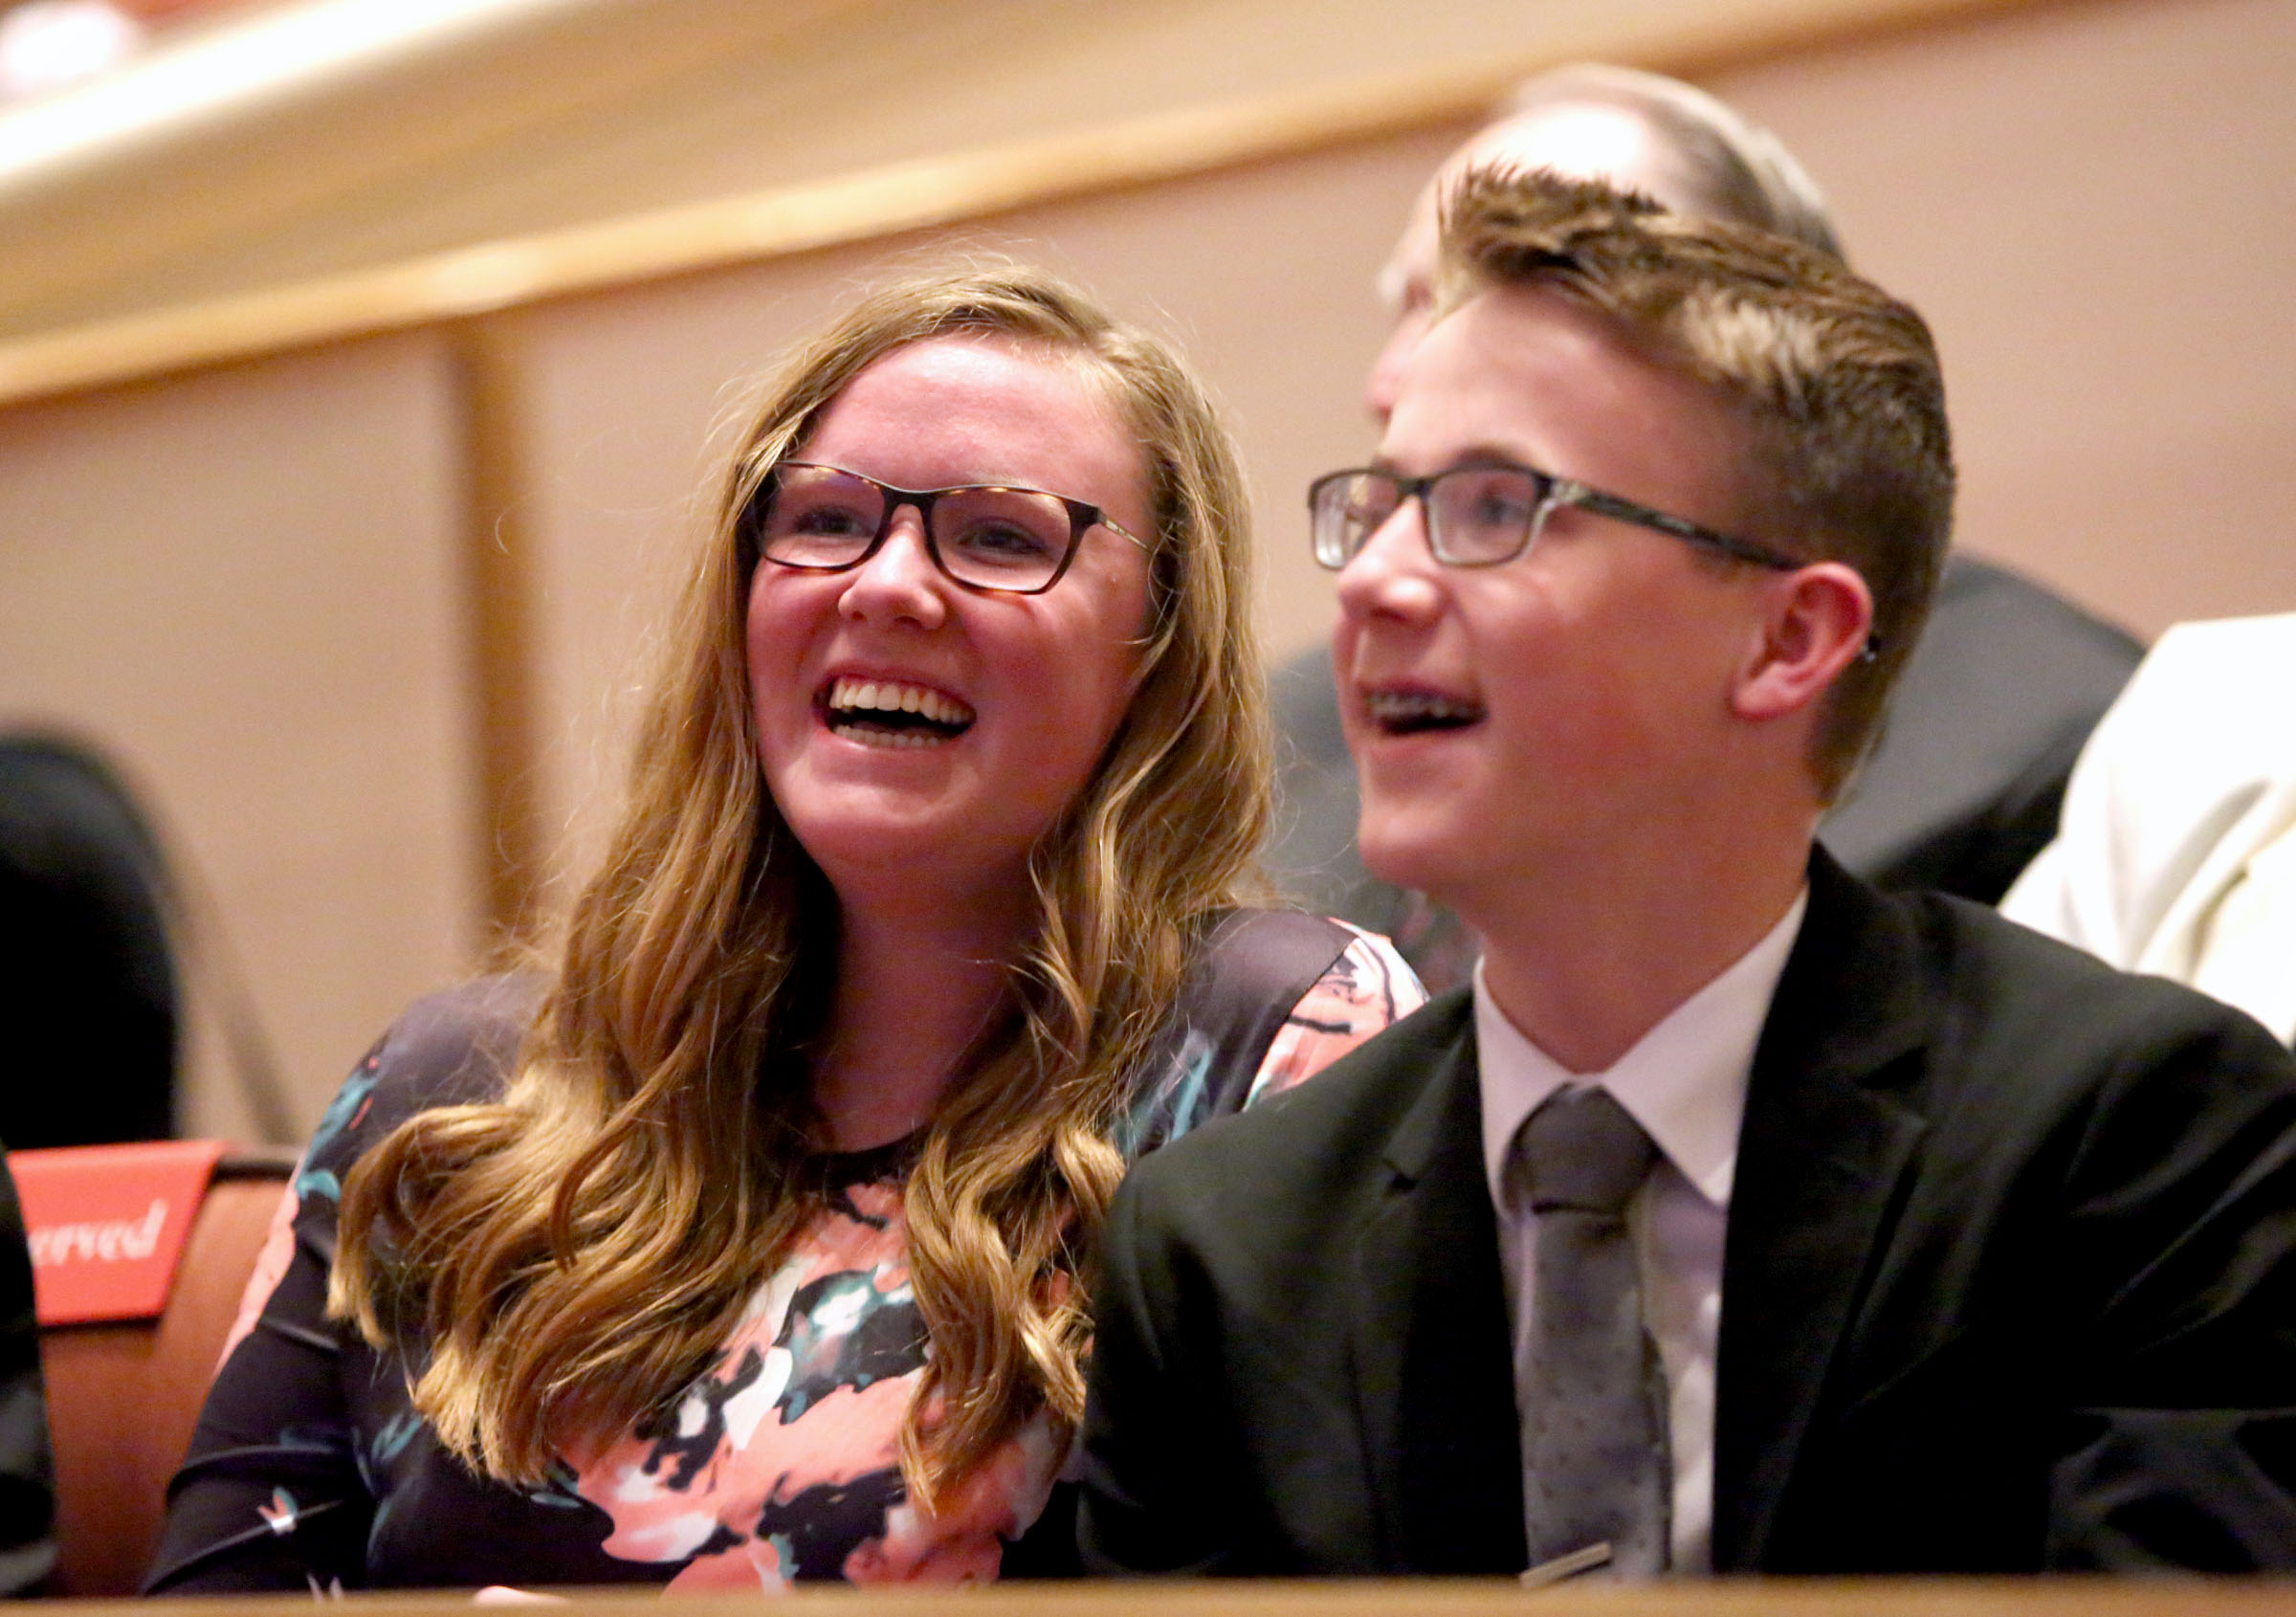 Conferencegoers react to LDS Church President Russell M. Nelson's announcement that there will be seven new temples around the world, including one in Layton, Utah, during the Sunday afternoon session of the 188th Annual General Conference of The Church of Jesus Christ of Latter-day Saints at the Conference Center in Salt Lake City on Sunday, April 1, 2018.